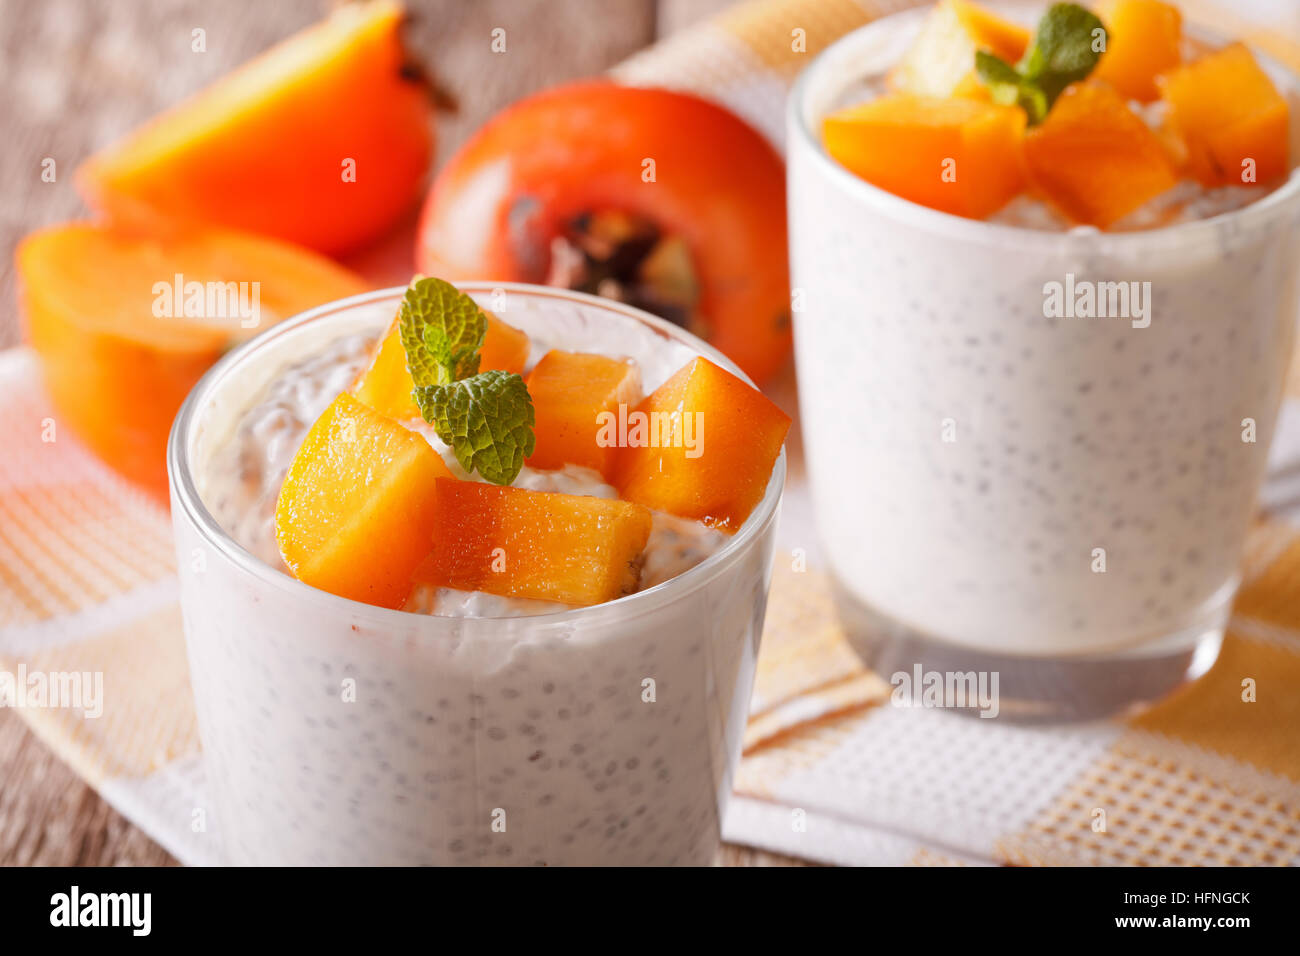 dessert with chia seeds and persimmon close up in a glass on the table. Horizontal - Stock Image